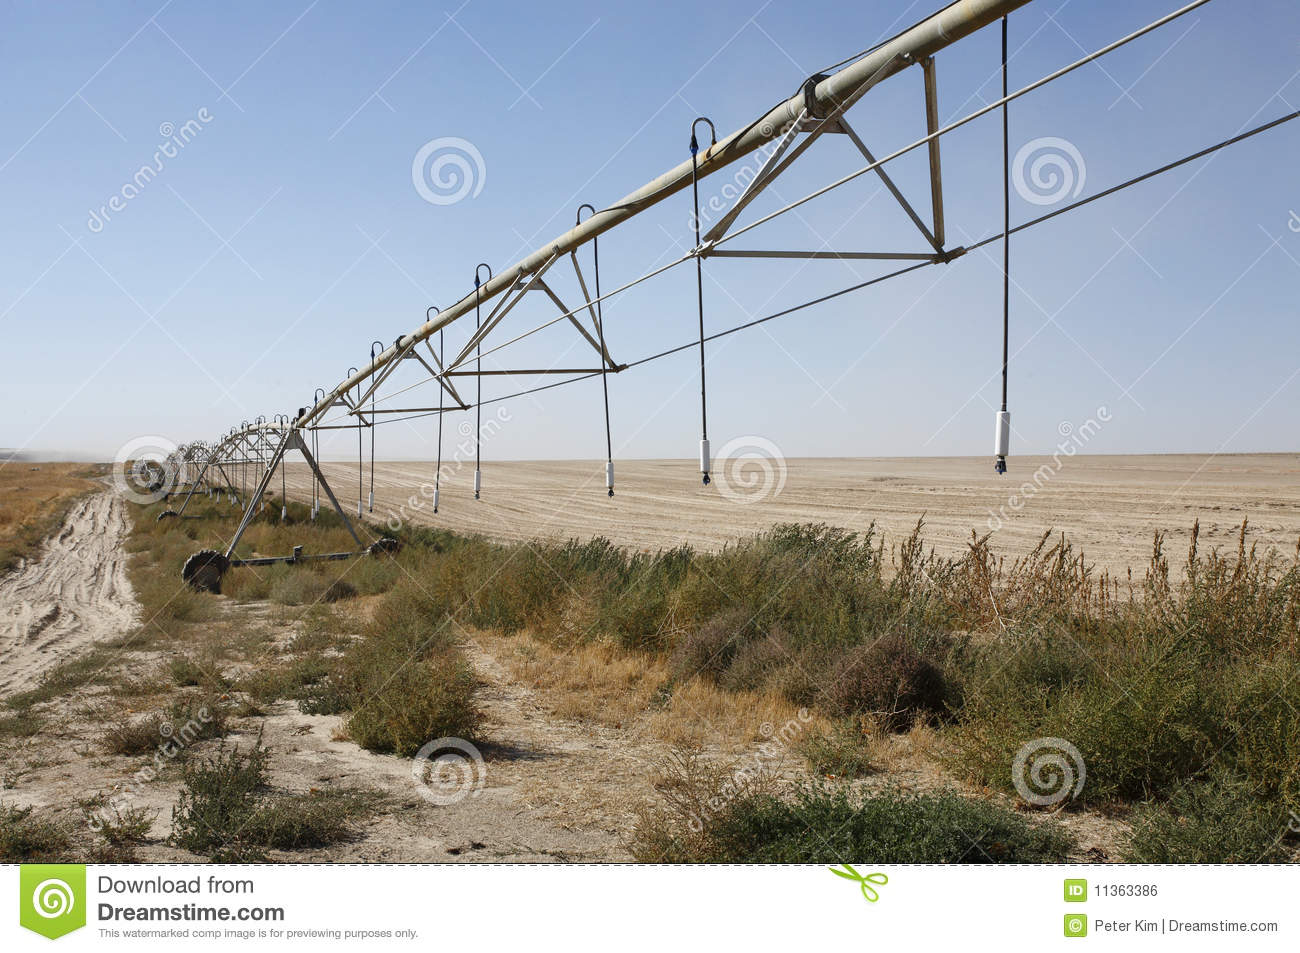 Farm Sprinklers Royalty Free Stock Image   Image  11363386